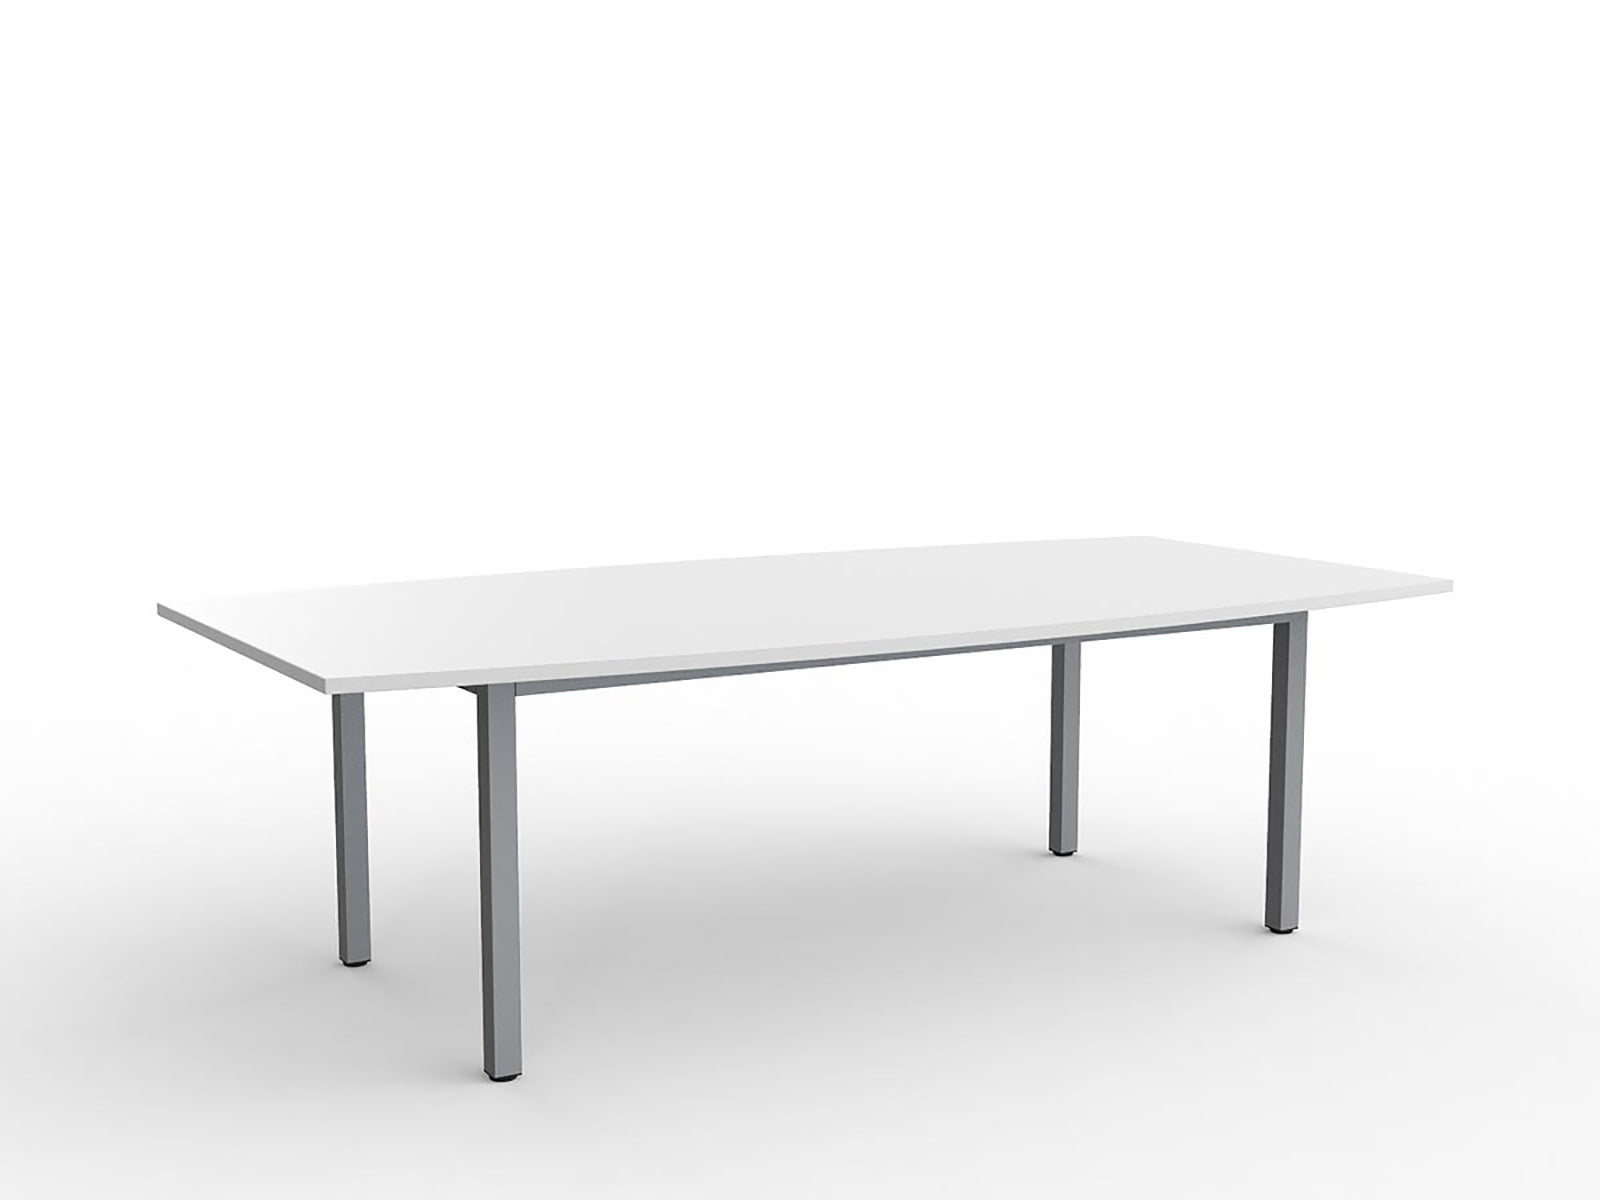 Cubit Silver 2.4m Boardroom Table - Workspace Furniture Home and Office Meeting Tables